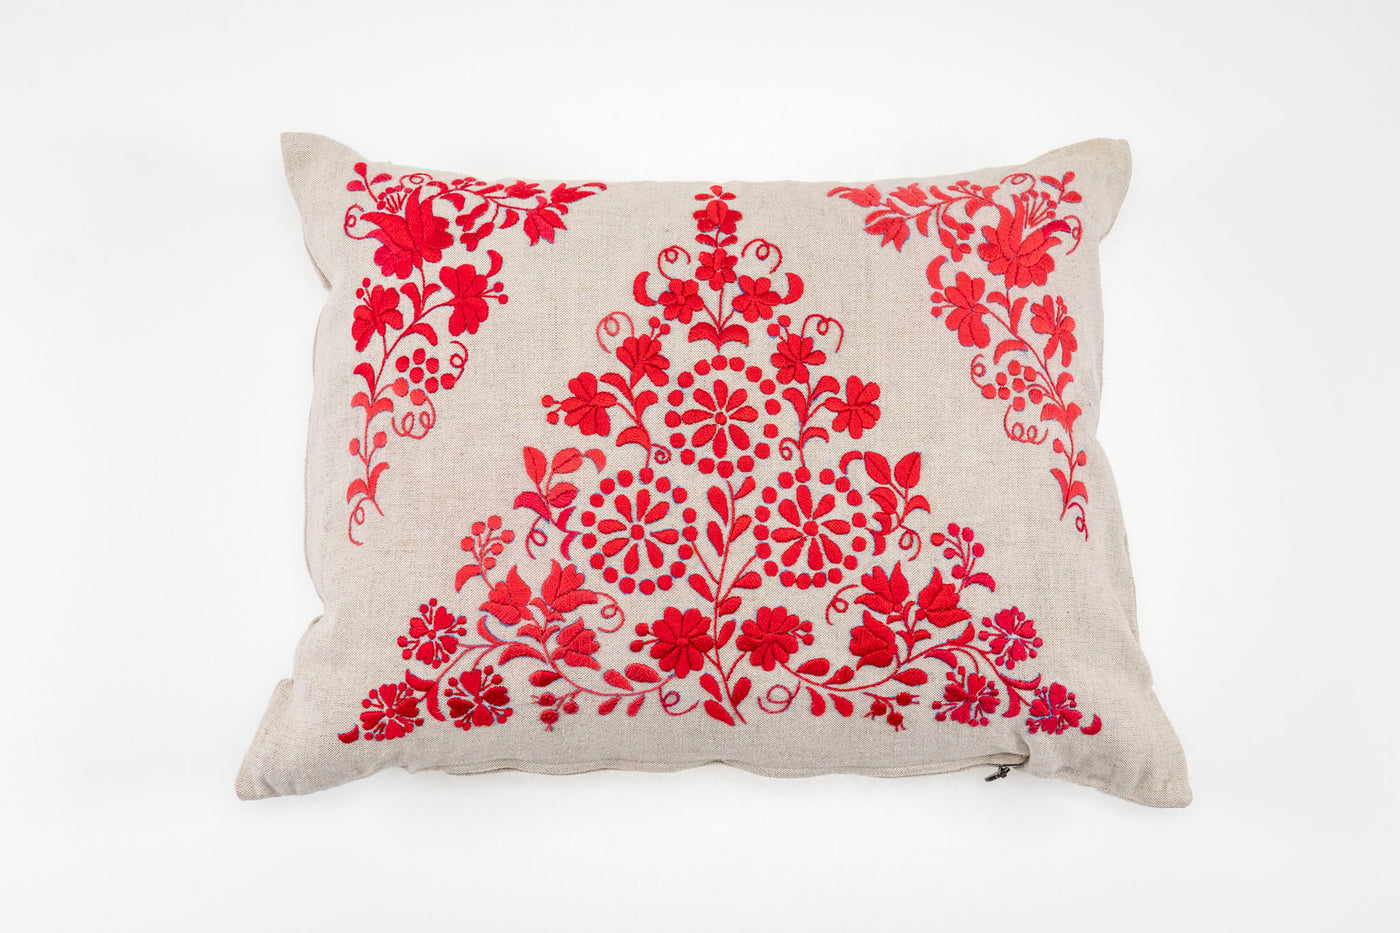 Pillow: Embroidered antique and vintage Hungarian hemp